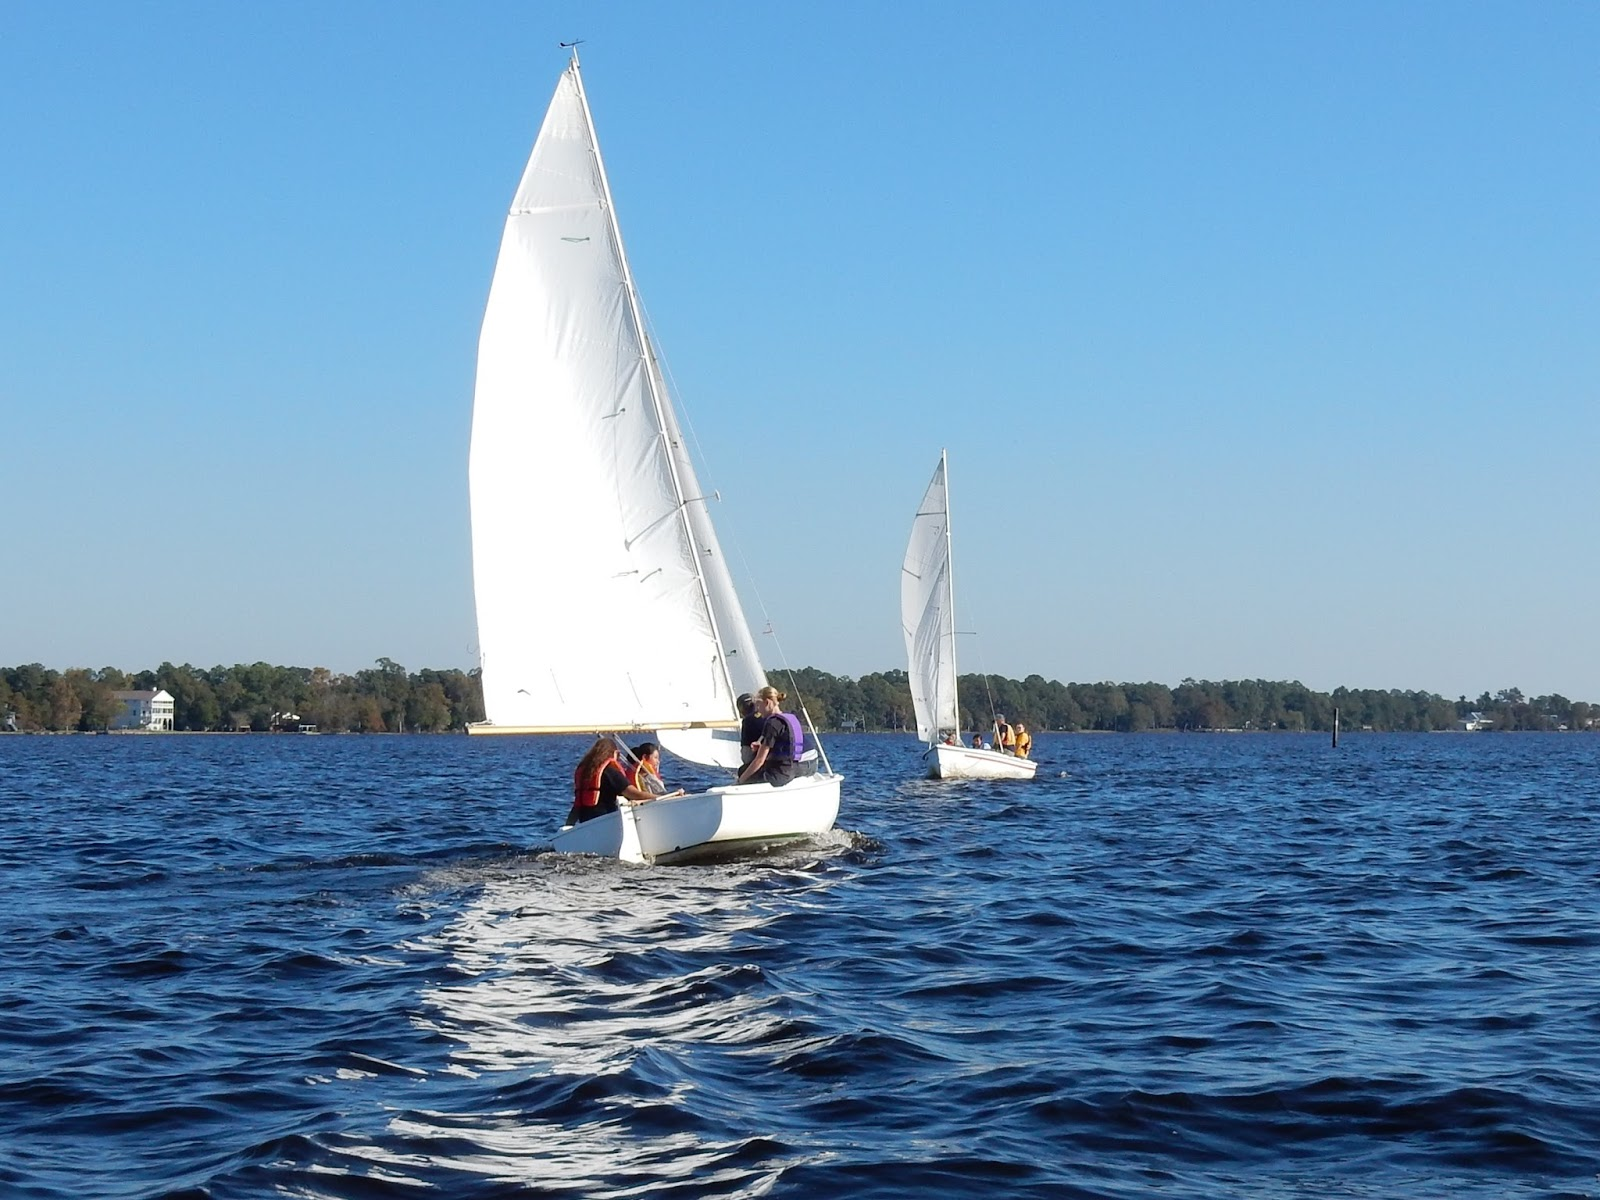 New bern high school naval junior rotc sailing october 2016 - Difference between port side and starboard ...